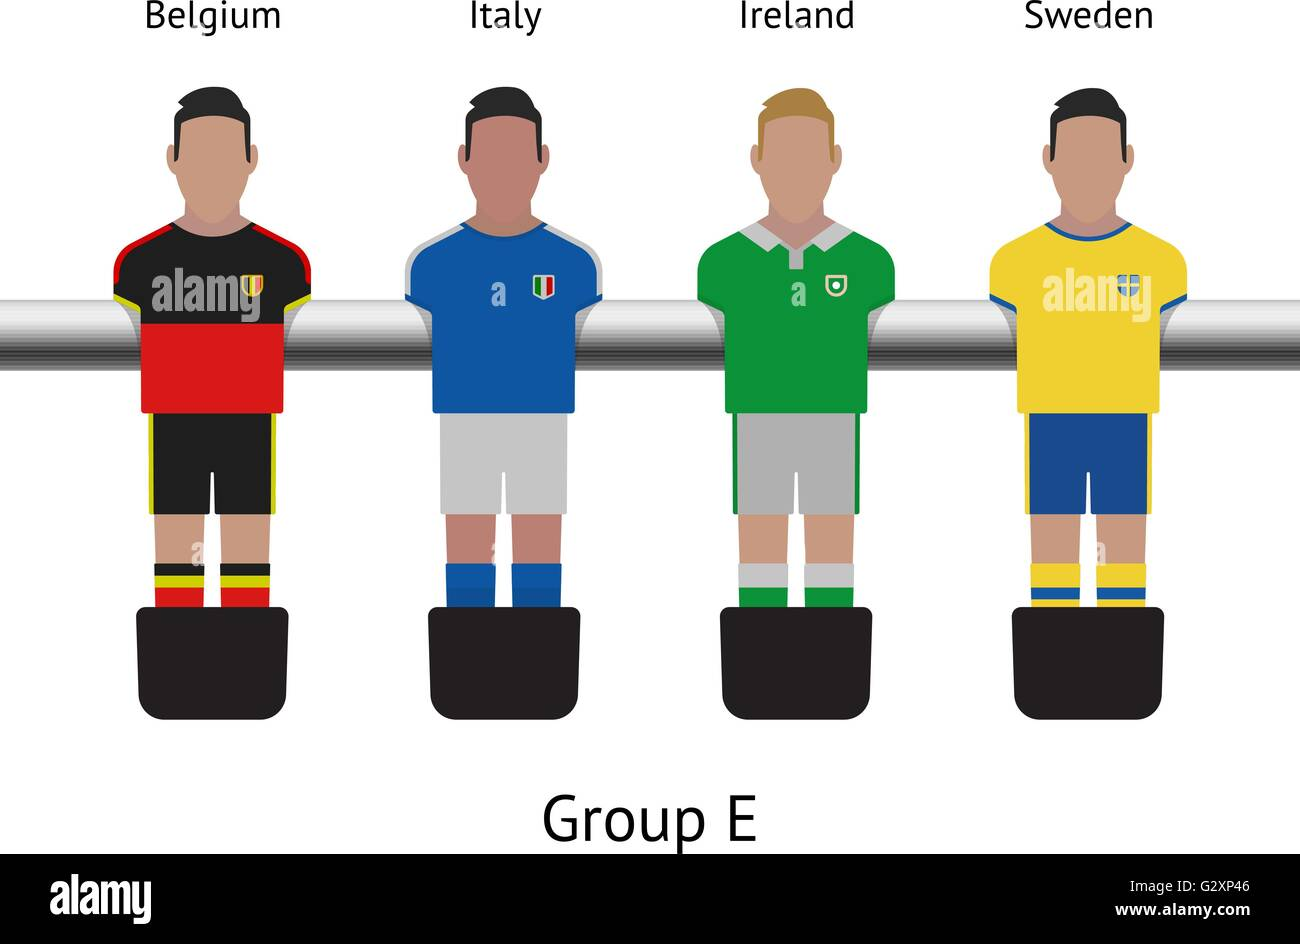 Table football game. foosball soccer player set. Belgium Italy Ireland Sweden  sc 1 st  Alamy & Table football game. foosball soccer player set. Belgium Italy ...